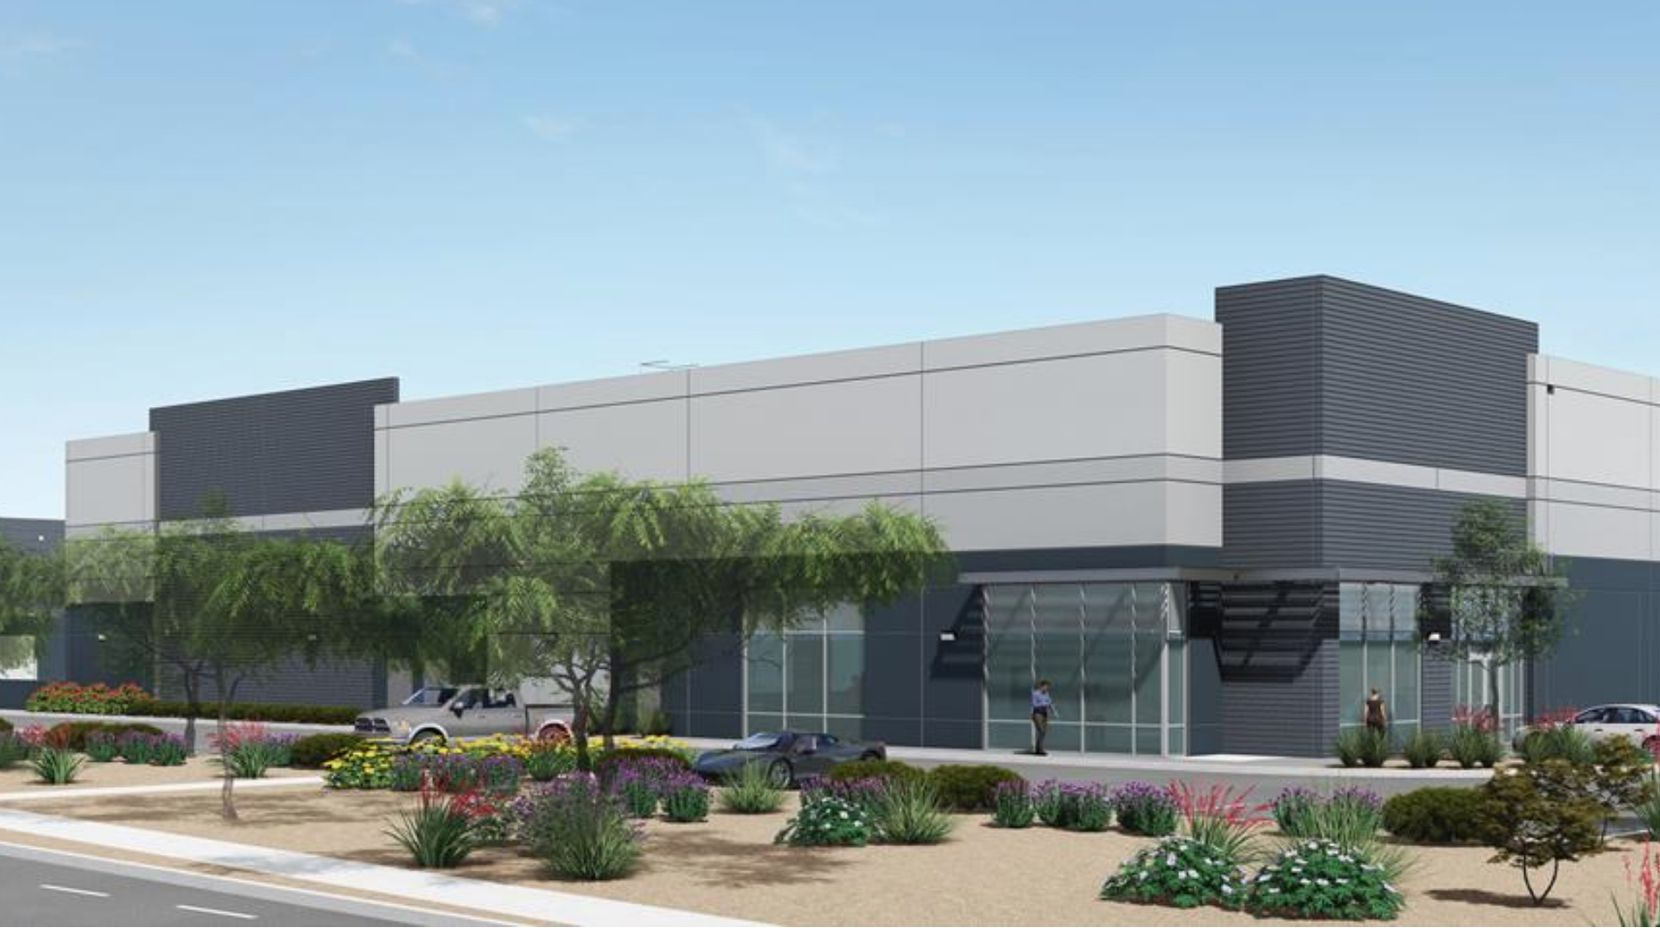 Calgary-based Hopewell Development is already building warehouses in the Phoenix area.